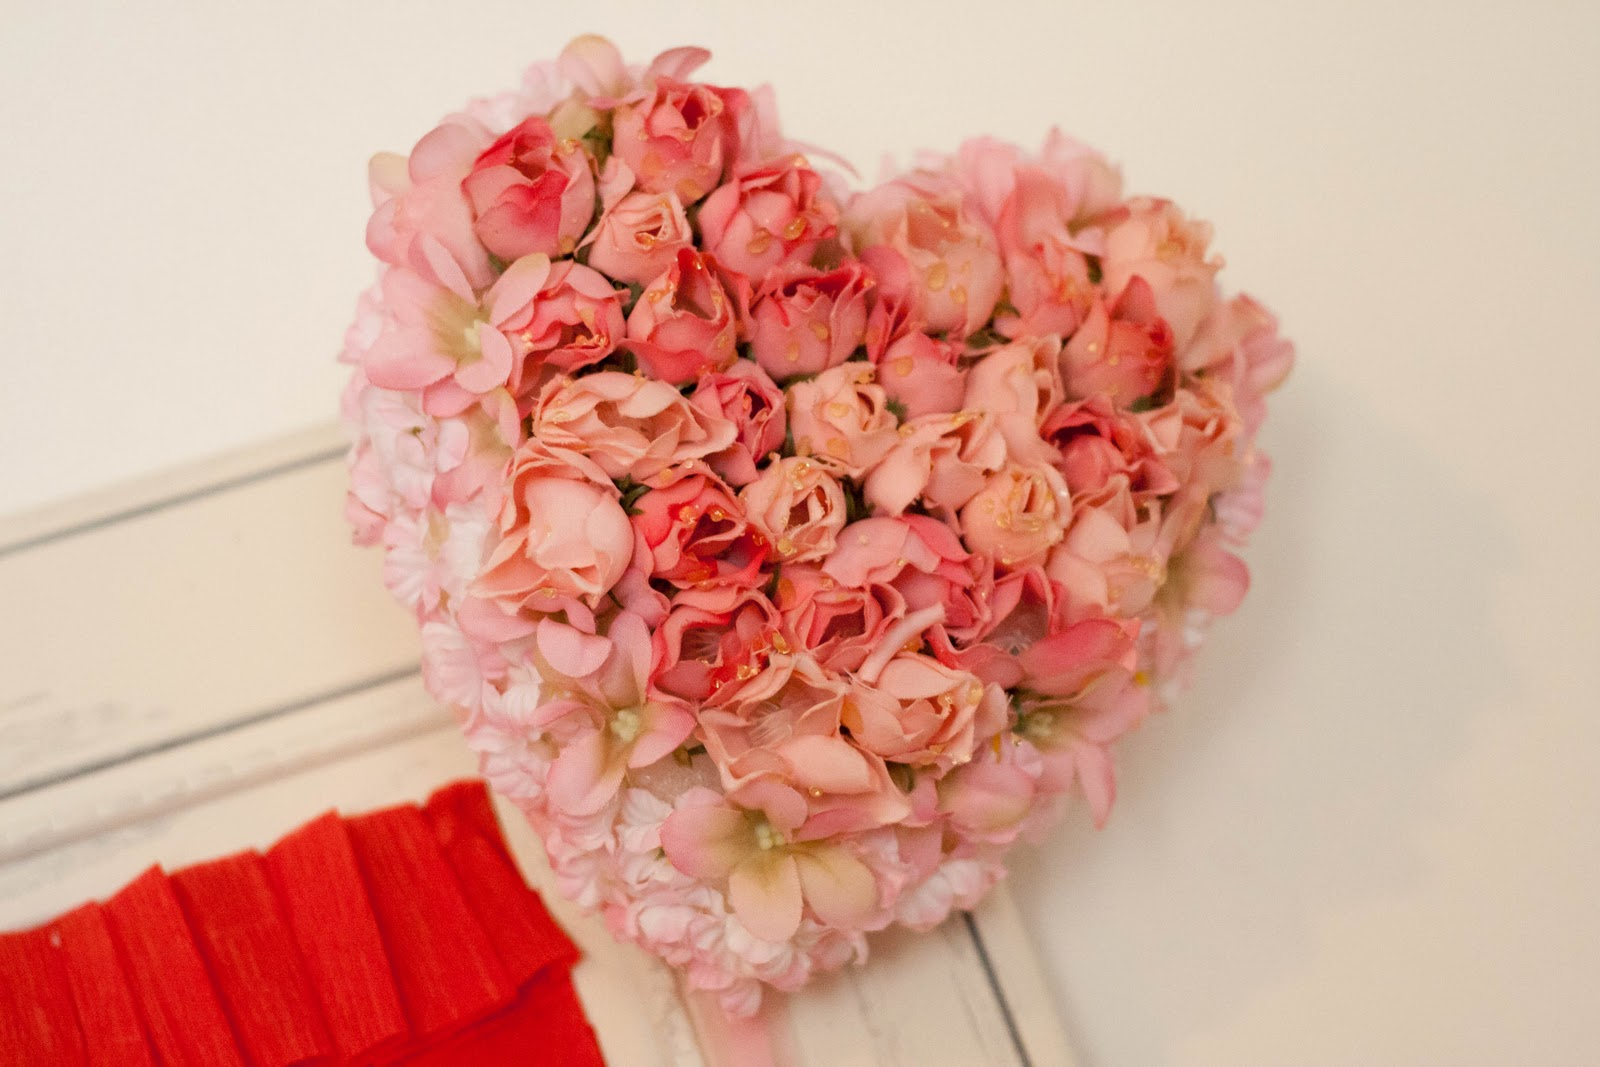 How To Make A Heart Shaped Floral Arrangement For Valentines Day